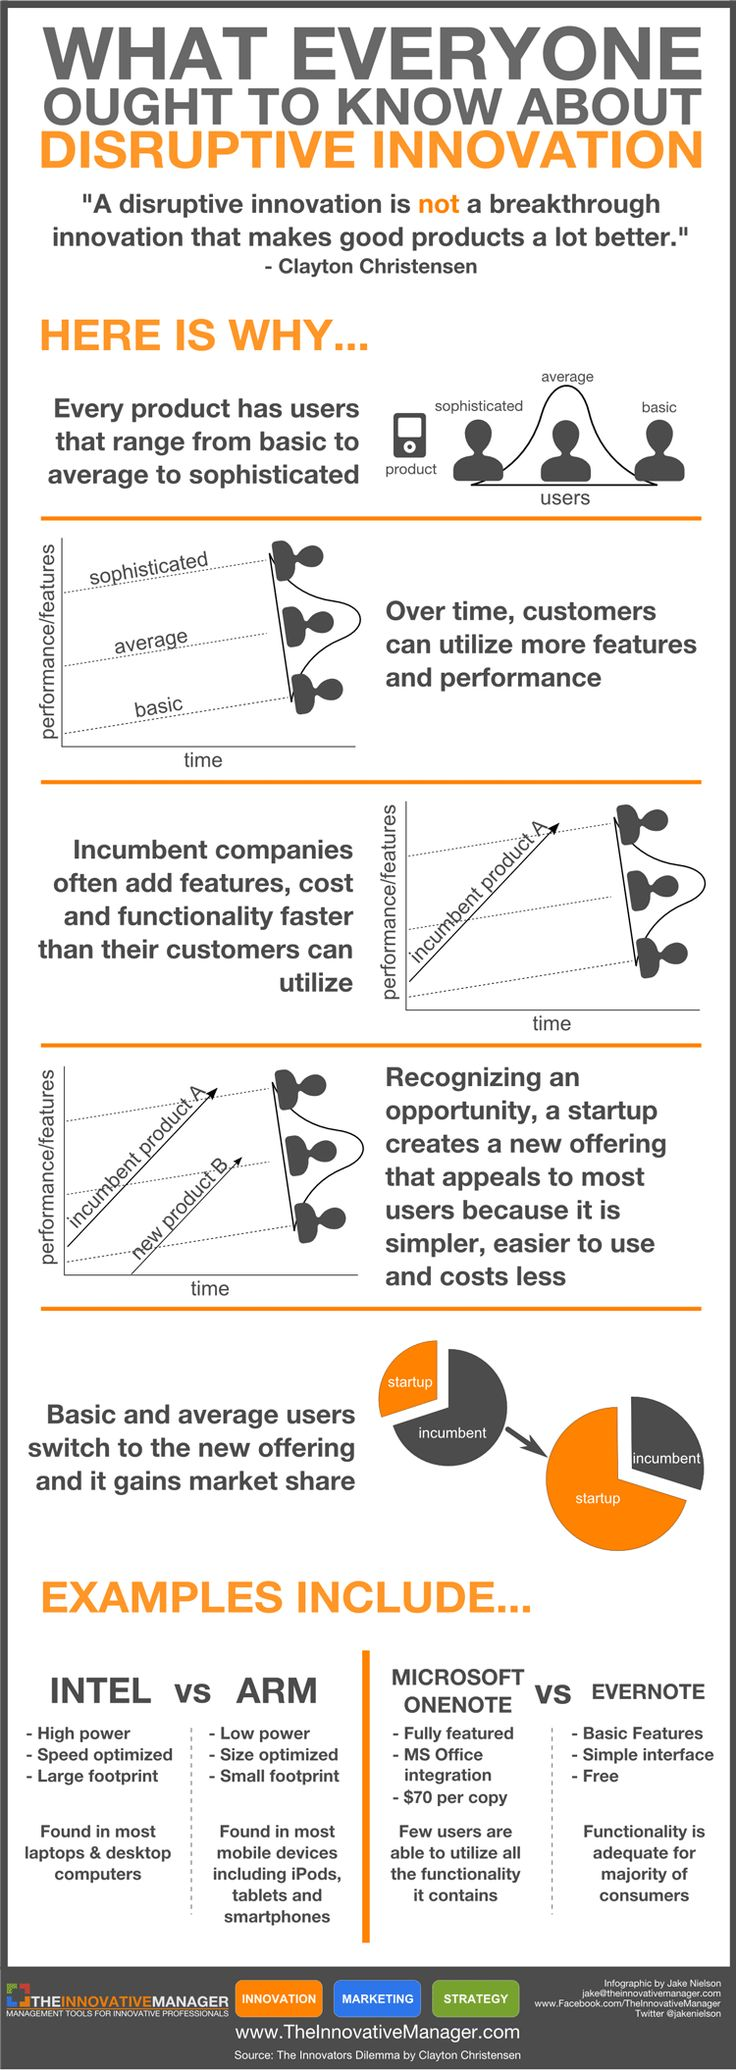 Disruptive Innovation infographic. If you like UX, design, or design thinking, check out theuxblog.com